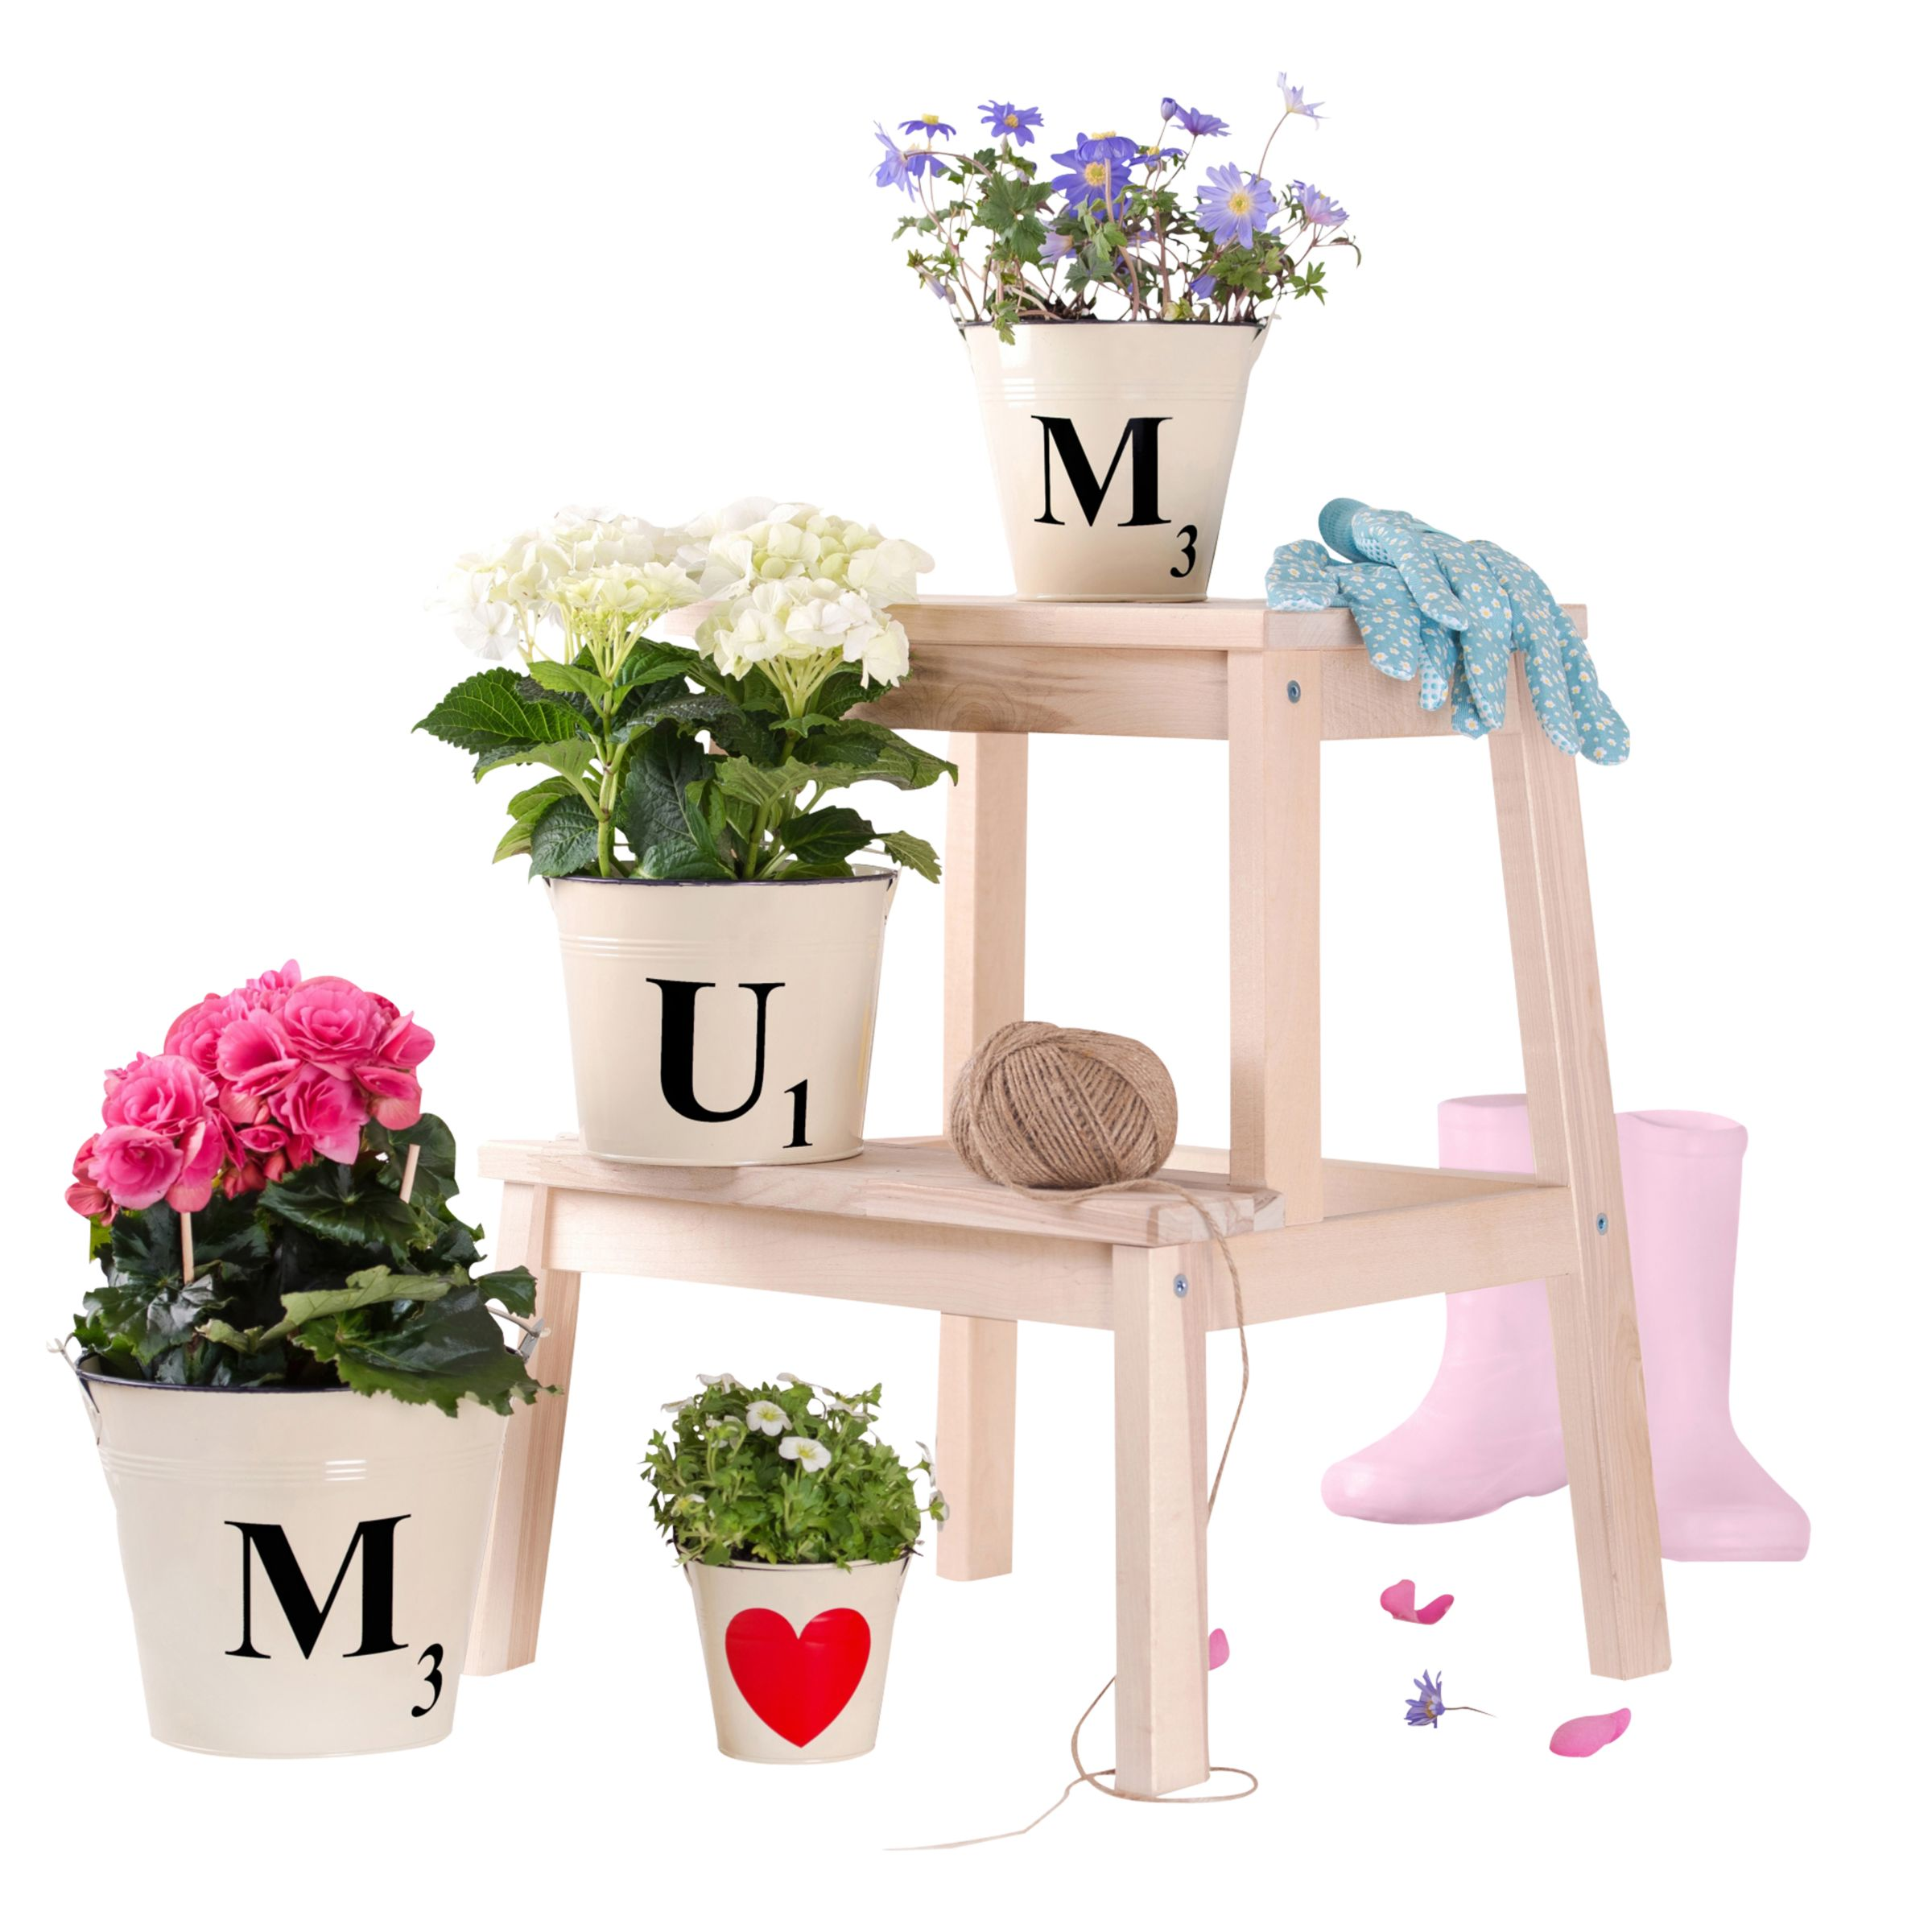 The Letteroom The Letteroom Letter Tile Style Buckets